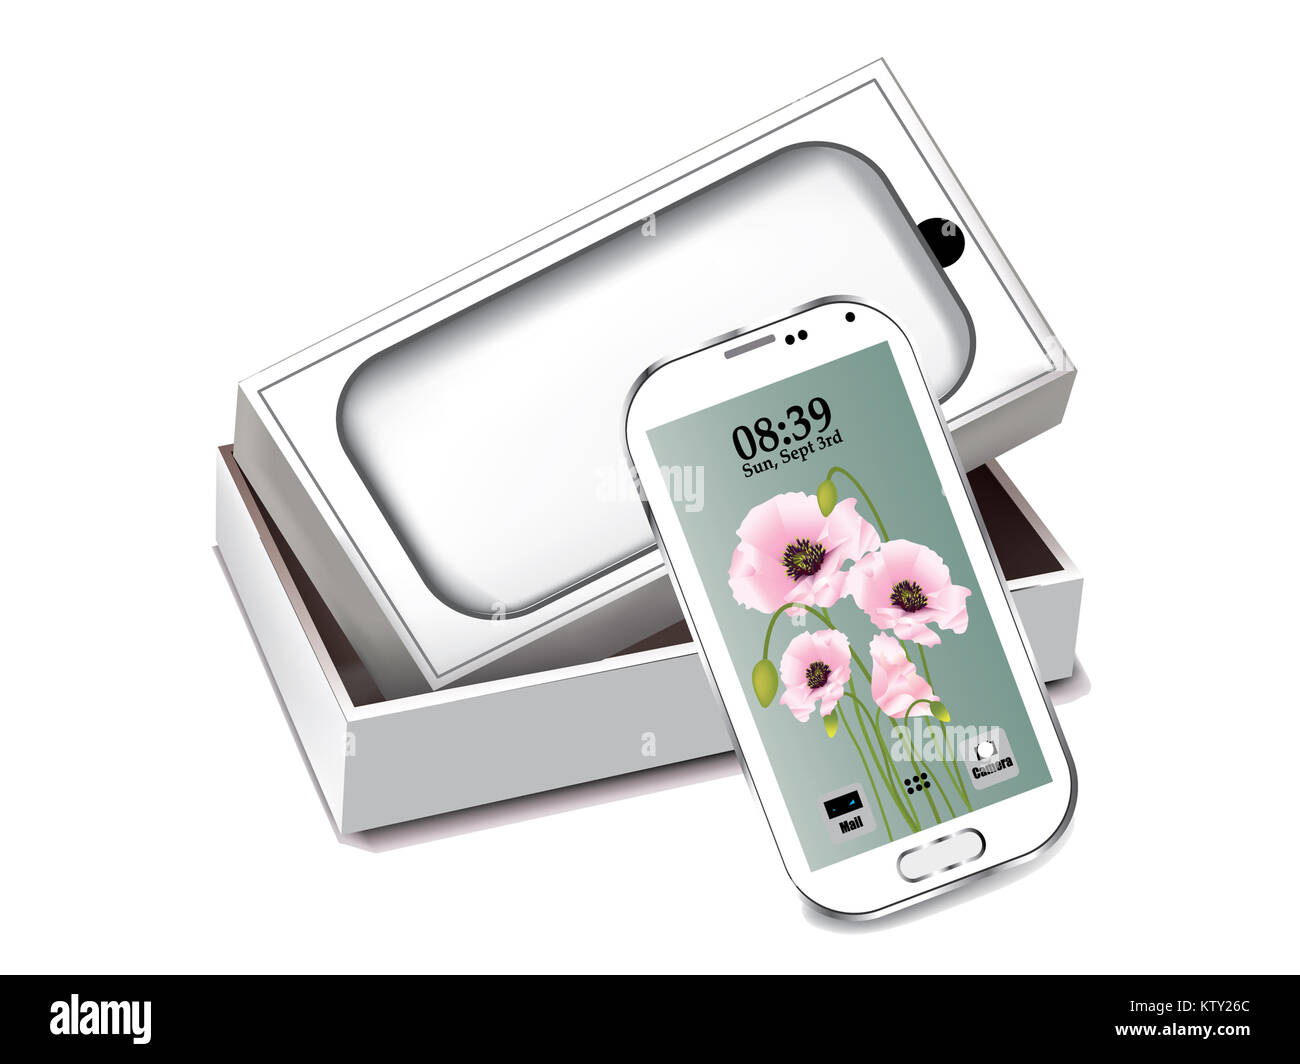 White mobile phone with white packaging isolated - Stock Image